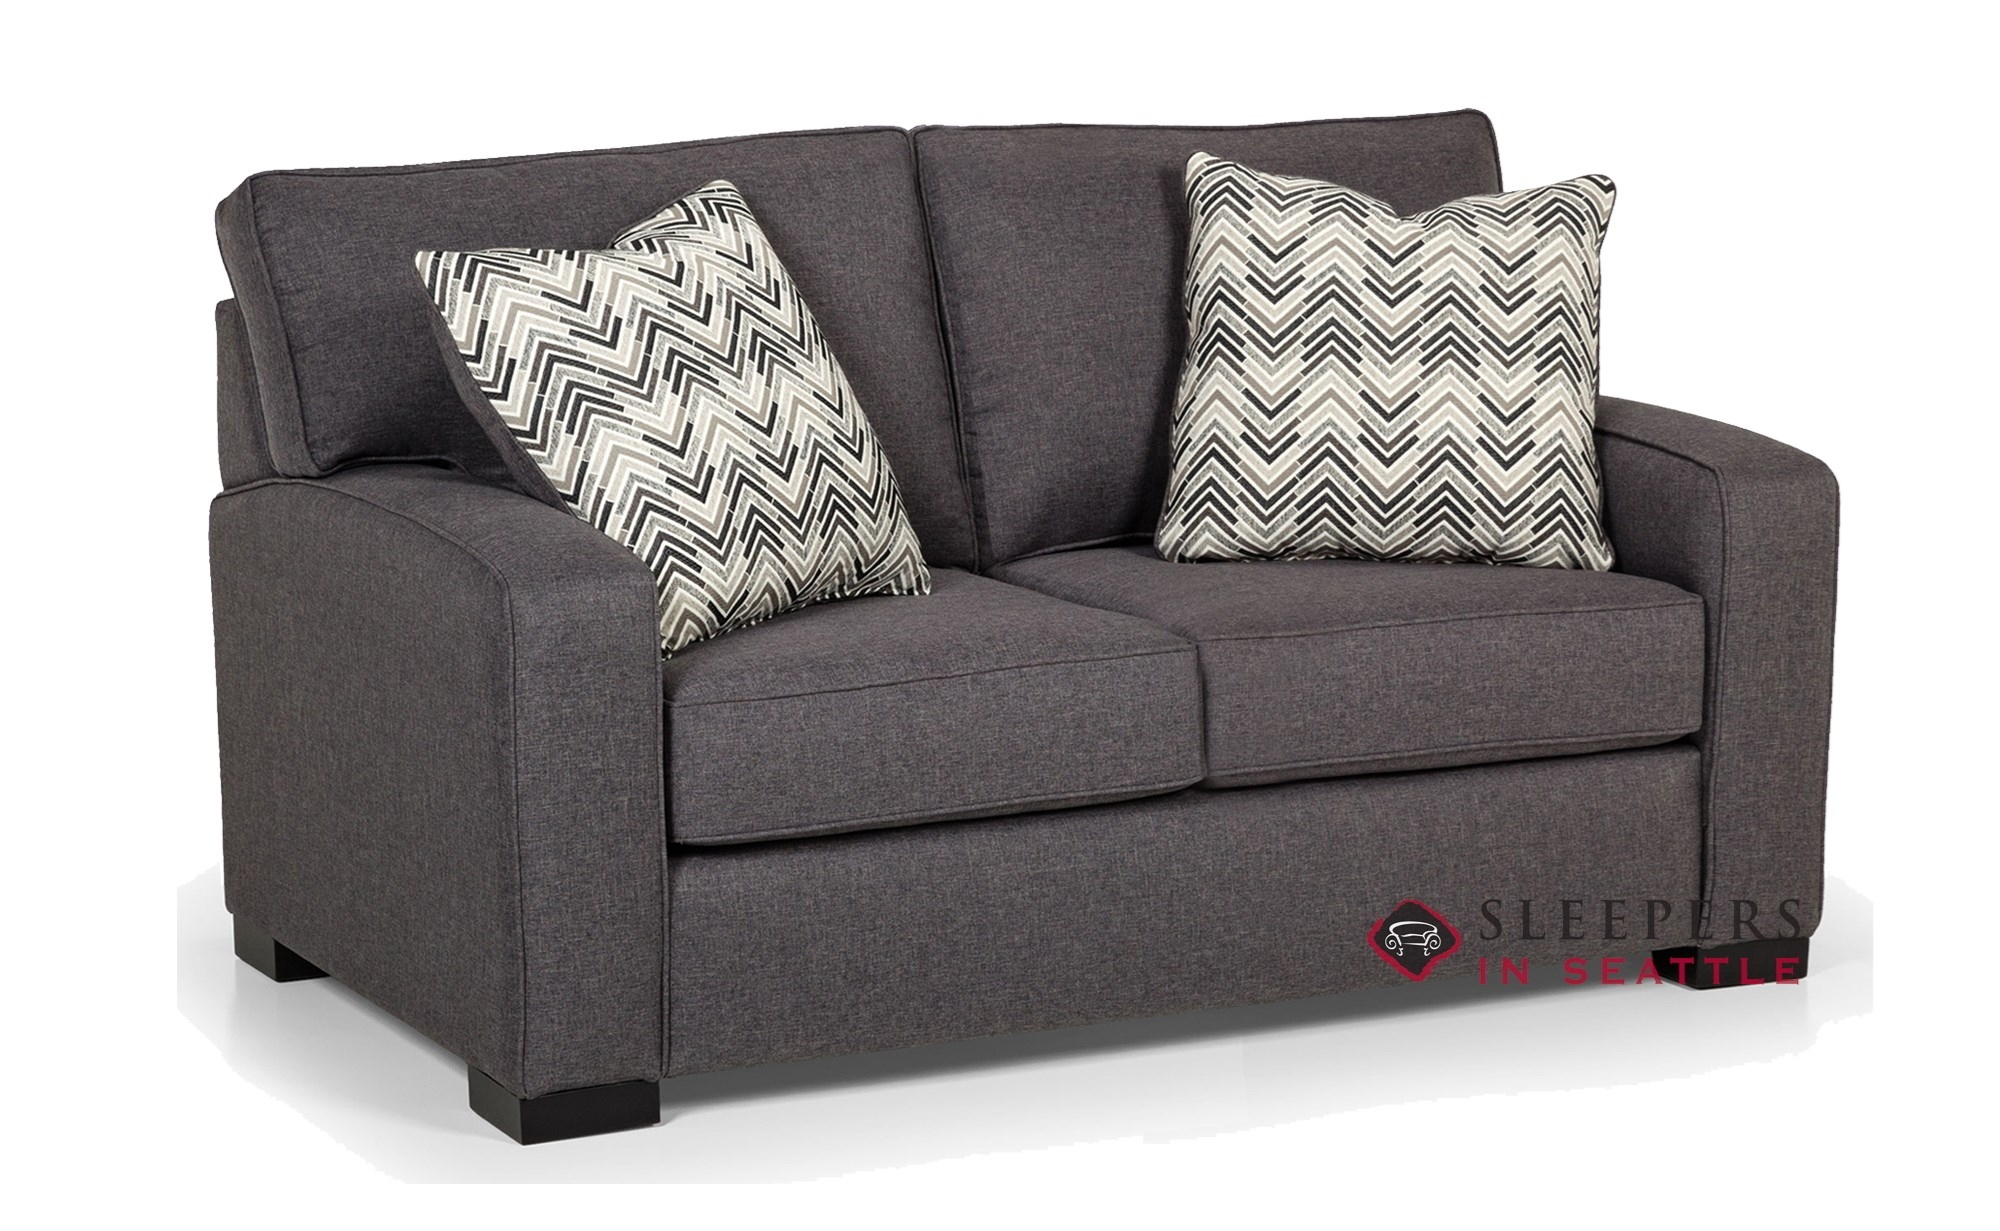 Customize And Personalize 375 Twin Fabric Sofa By Stanton Size Bed Sleepersinseattle